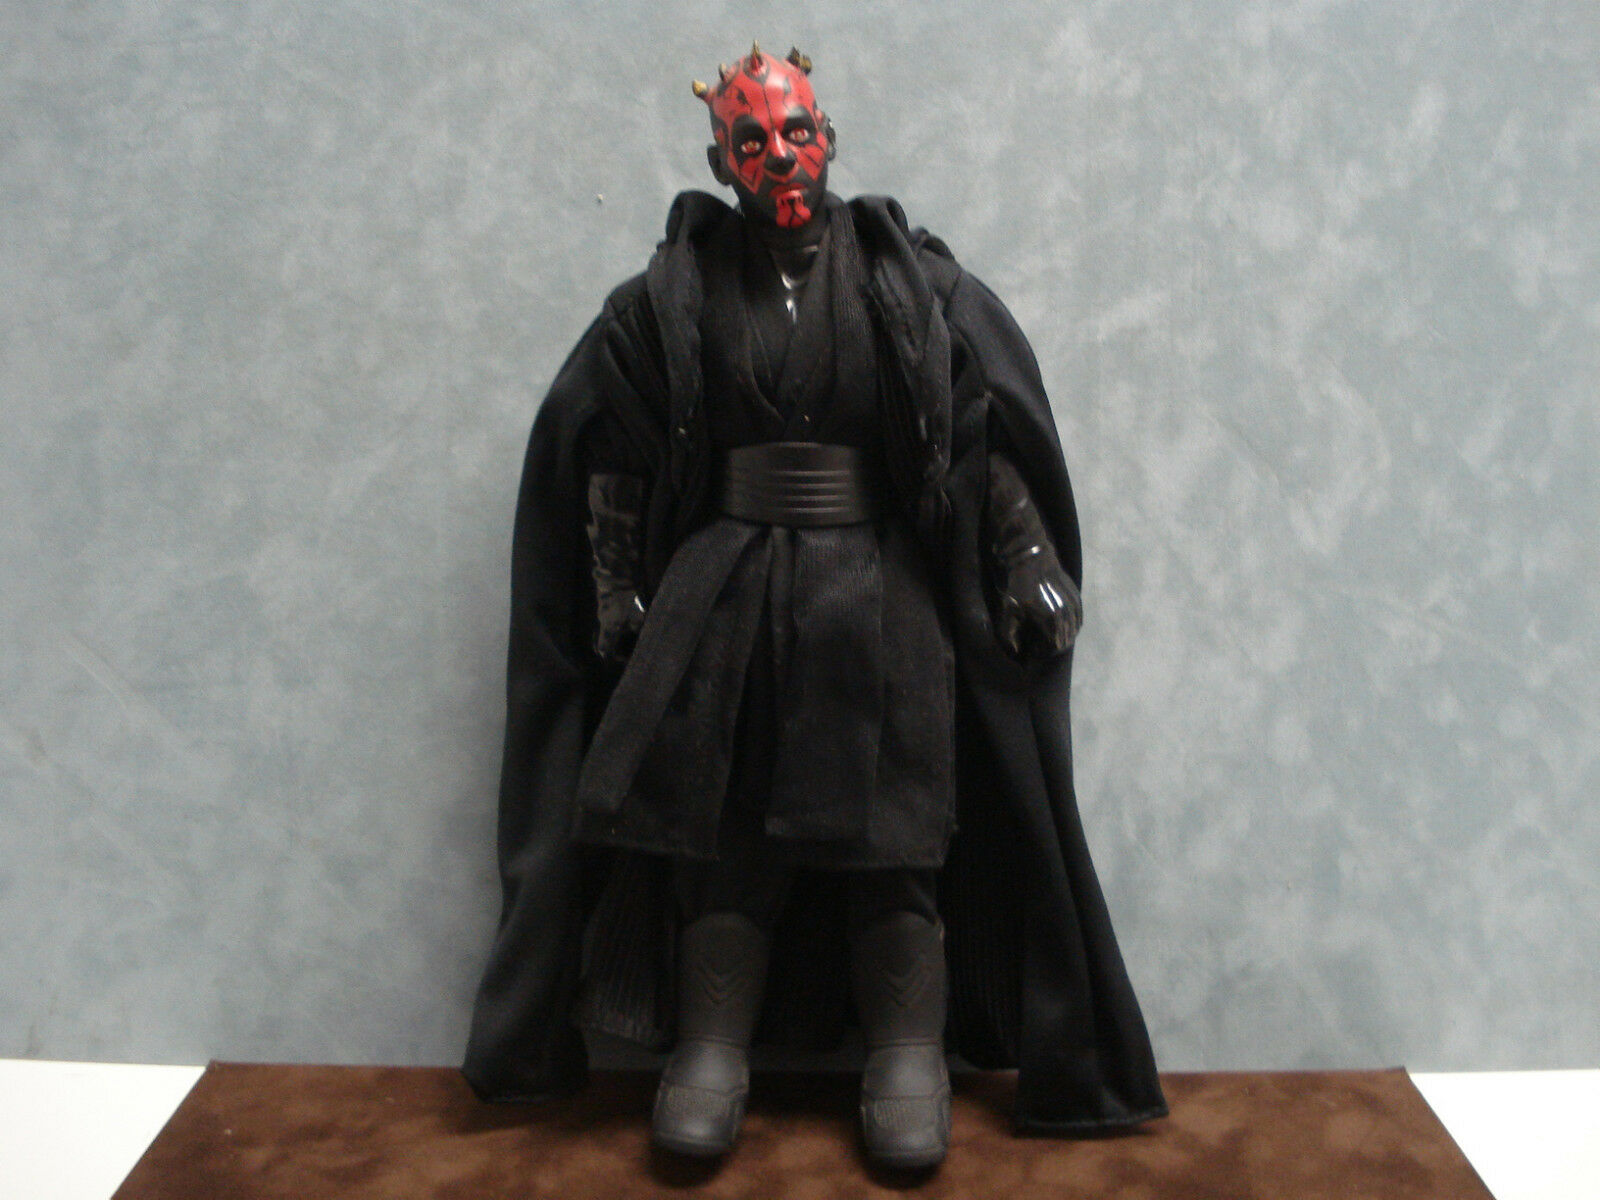 "Star Wars Vintage Darth Maul Action Figure 12"" Tall • $19 ..."